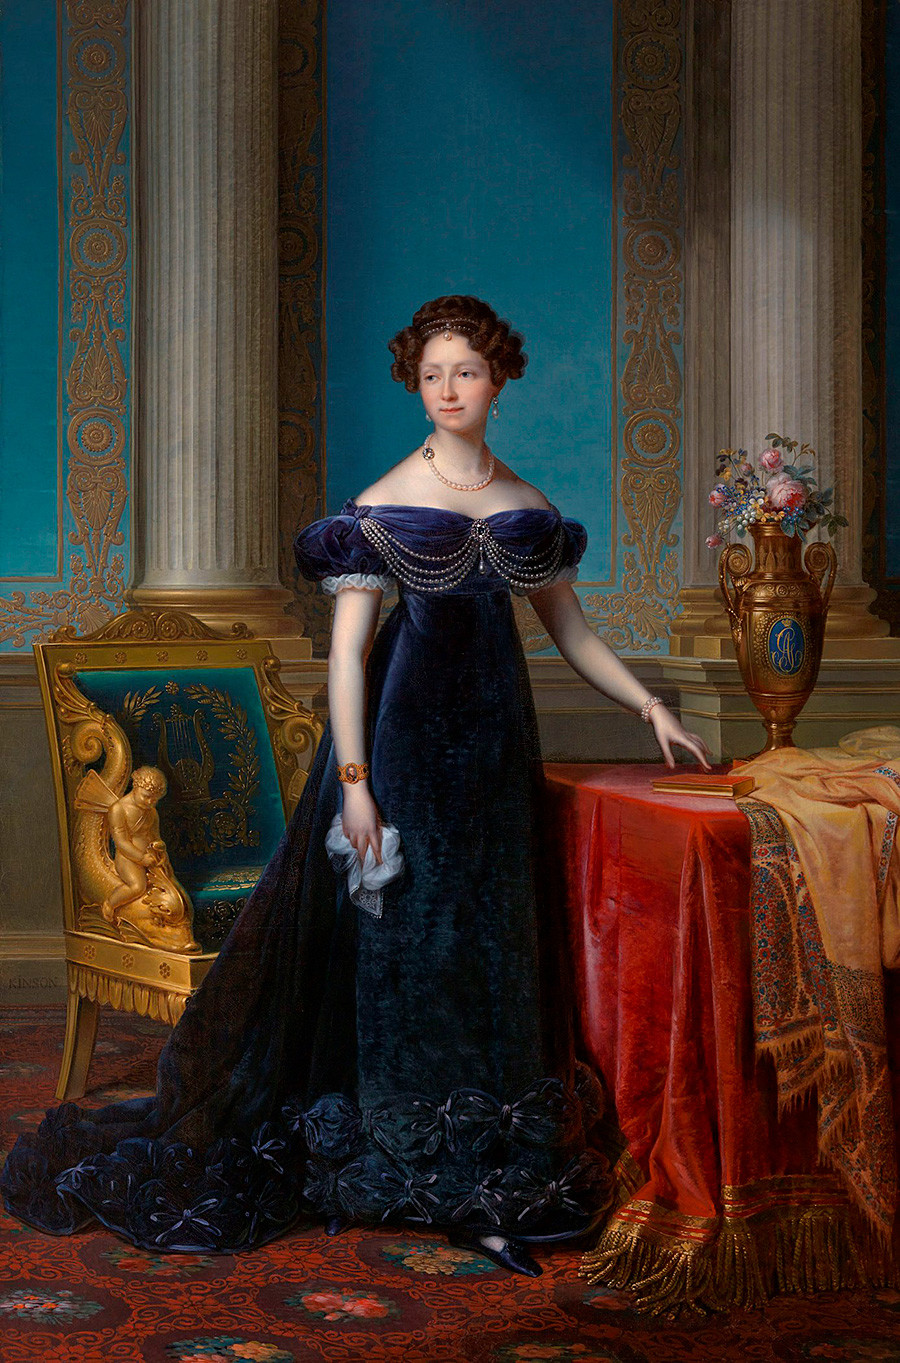 Queen of the Netherlands, Anna Pavlovna of Russia